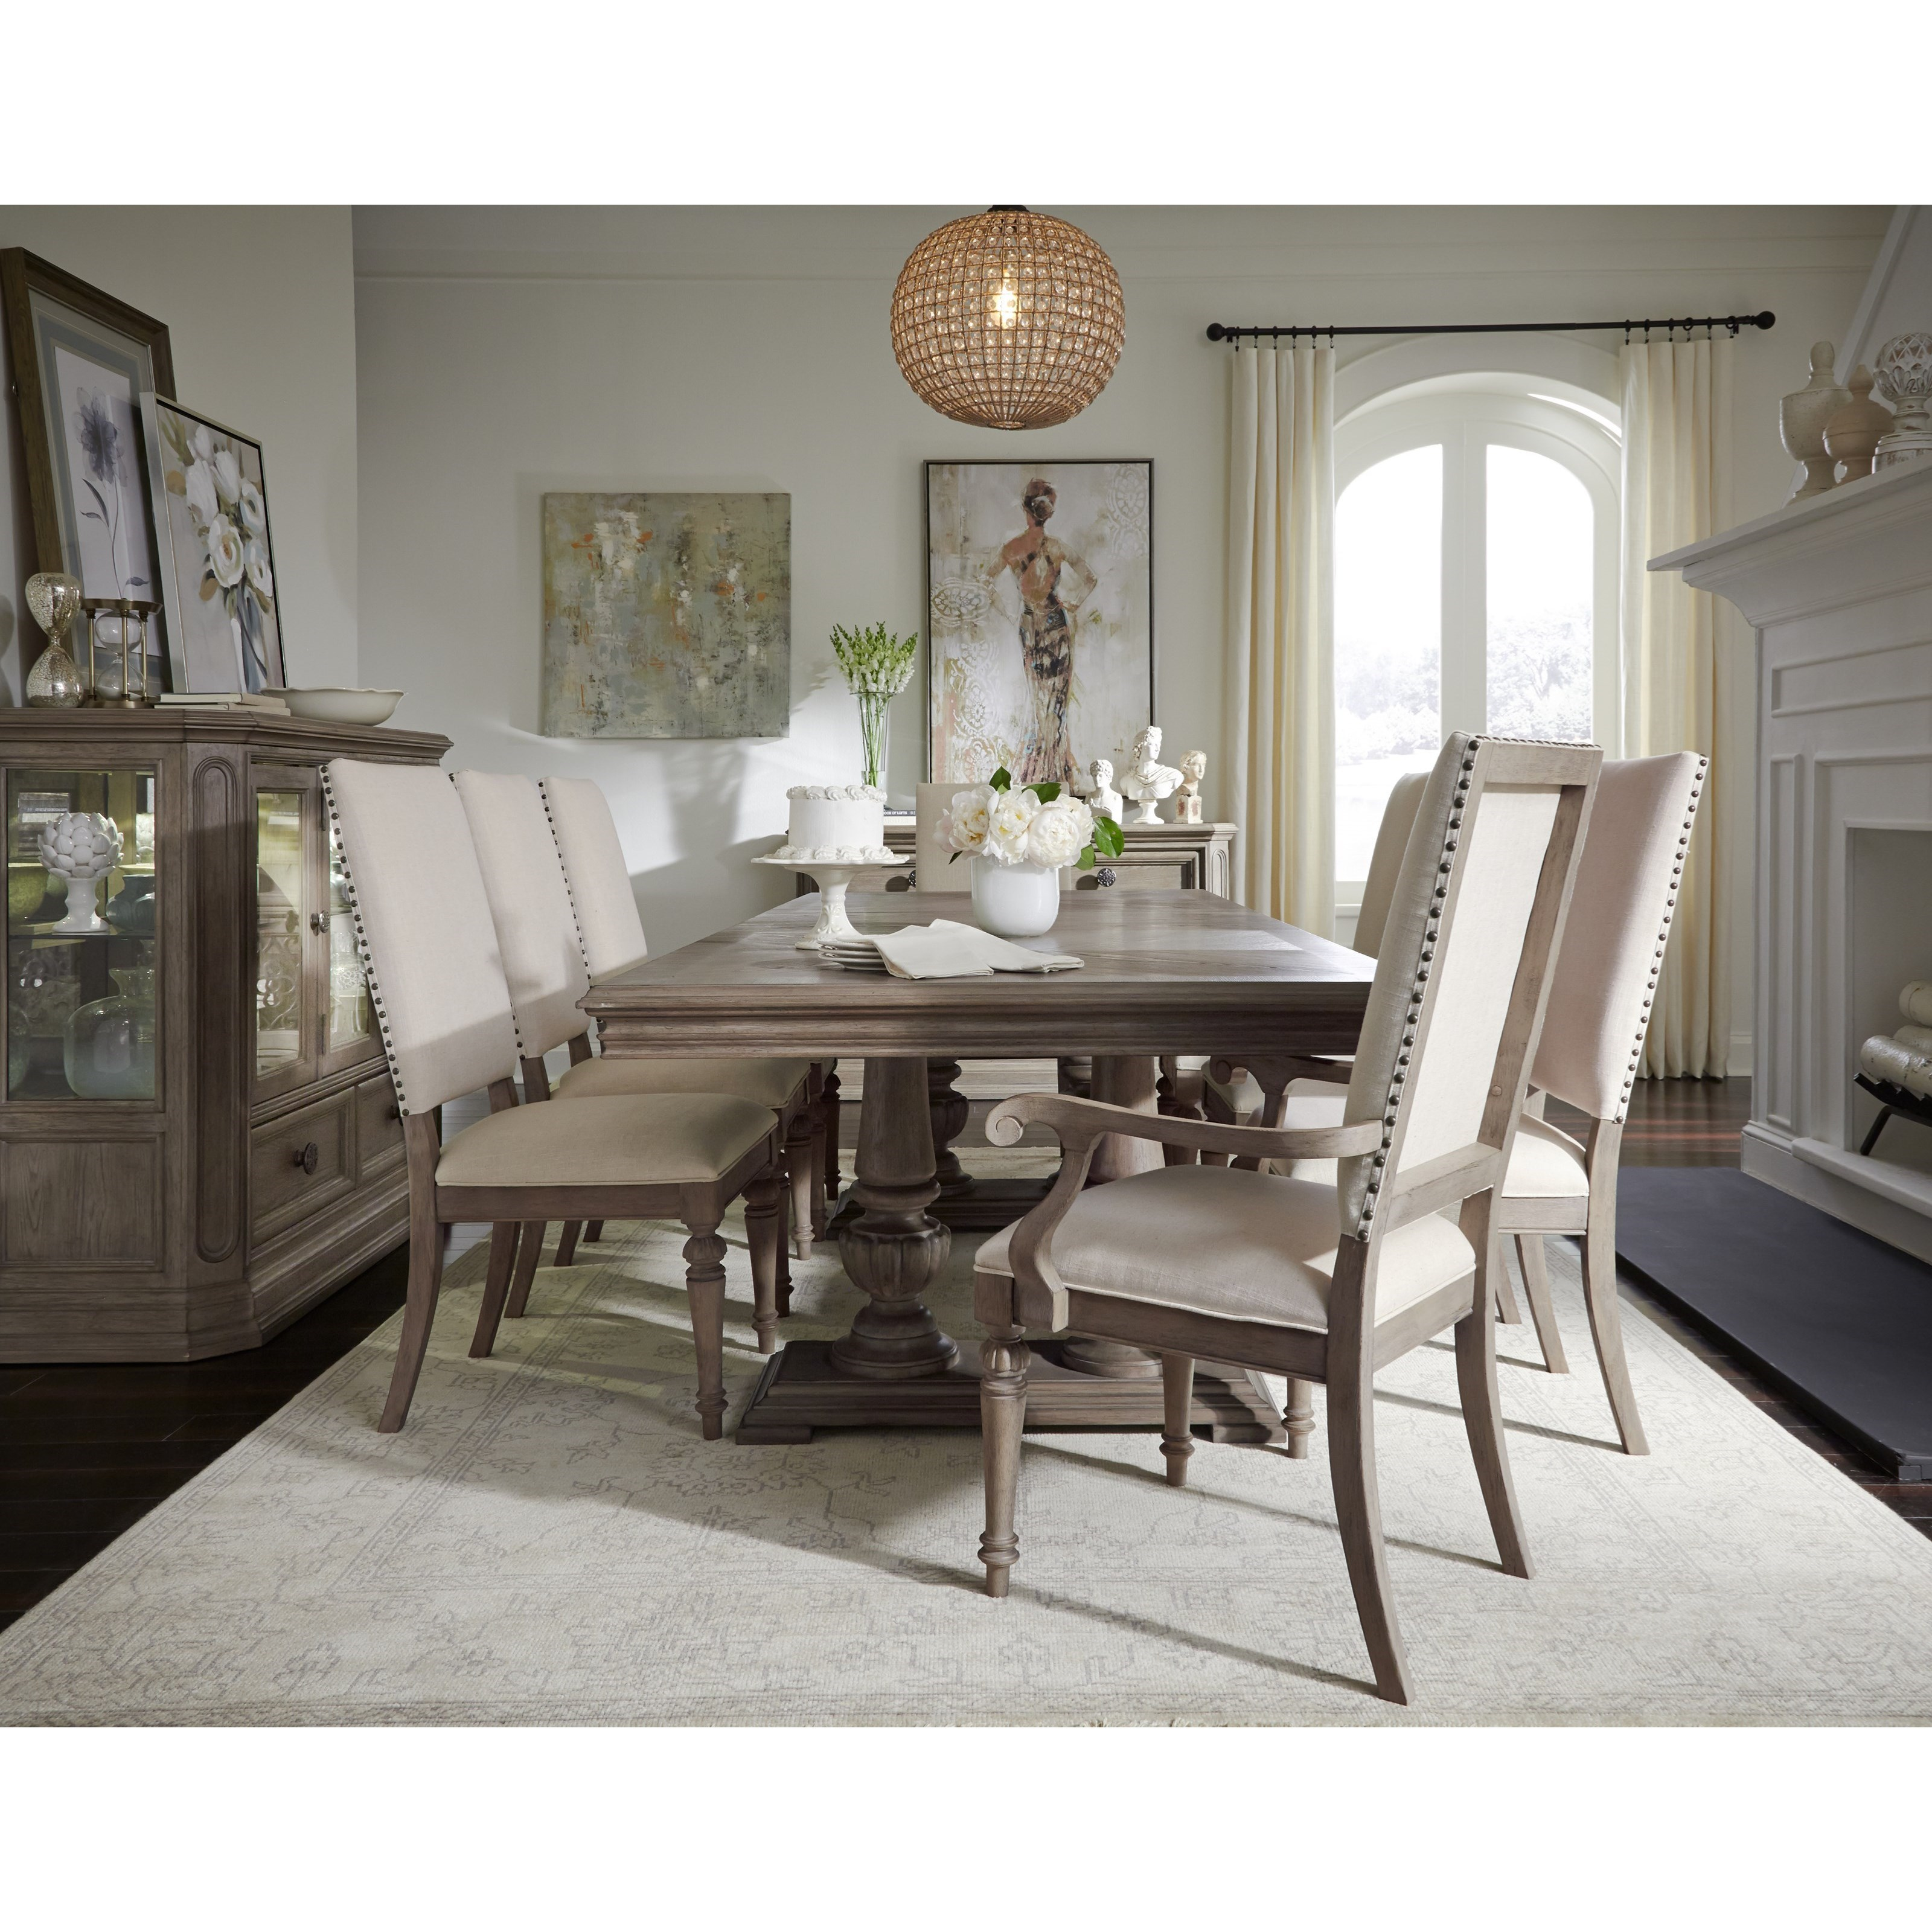 Manor House Formal Dining Group By Legacy Classic At Lindy S Furniture Company